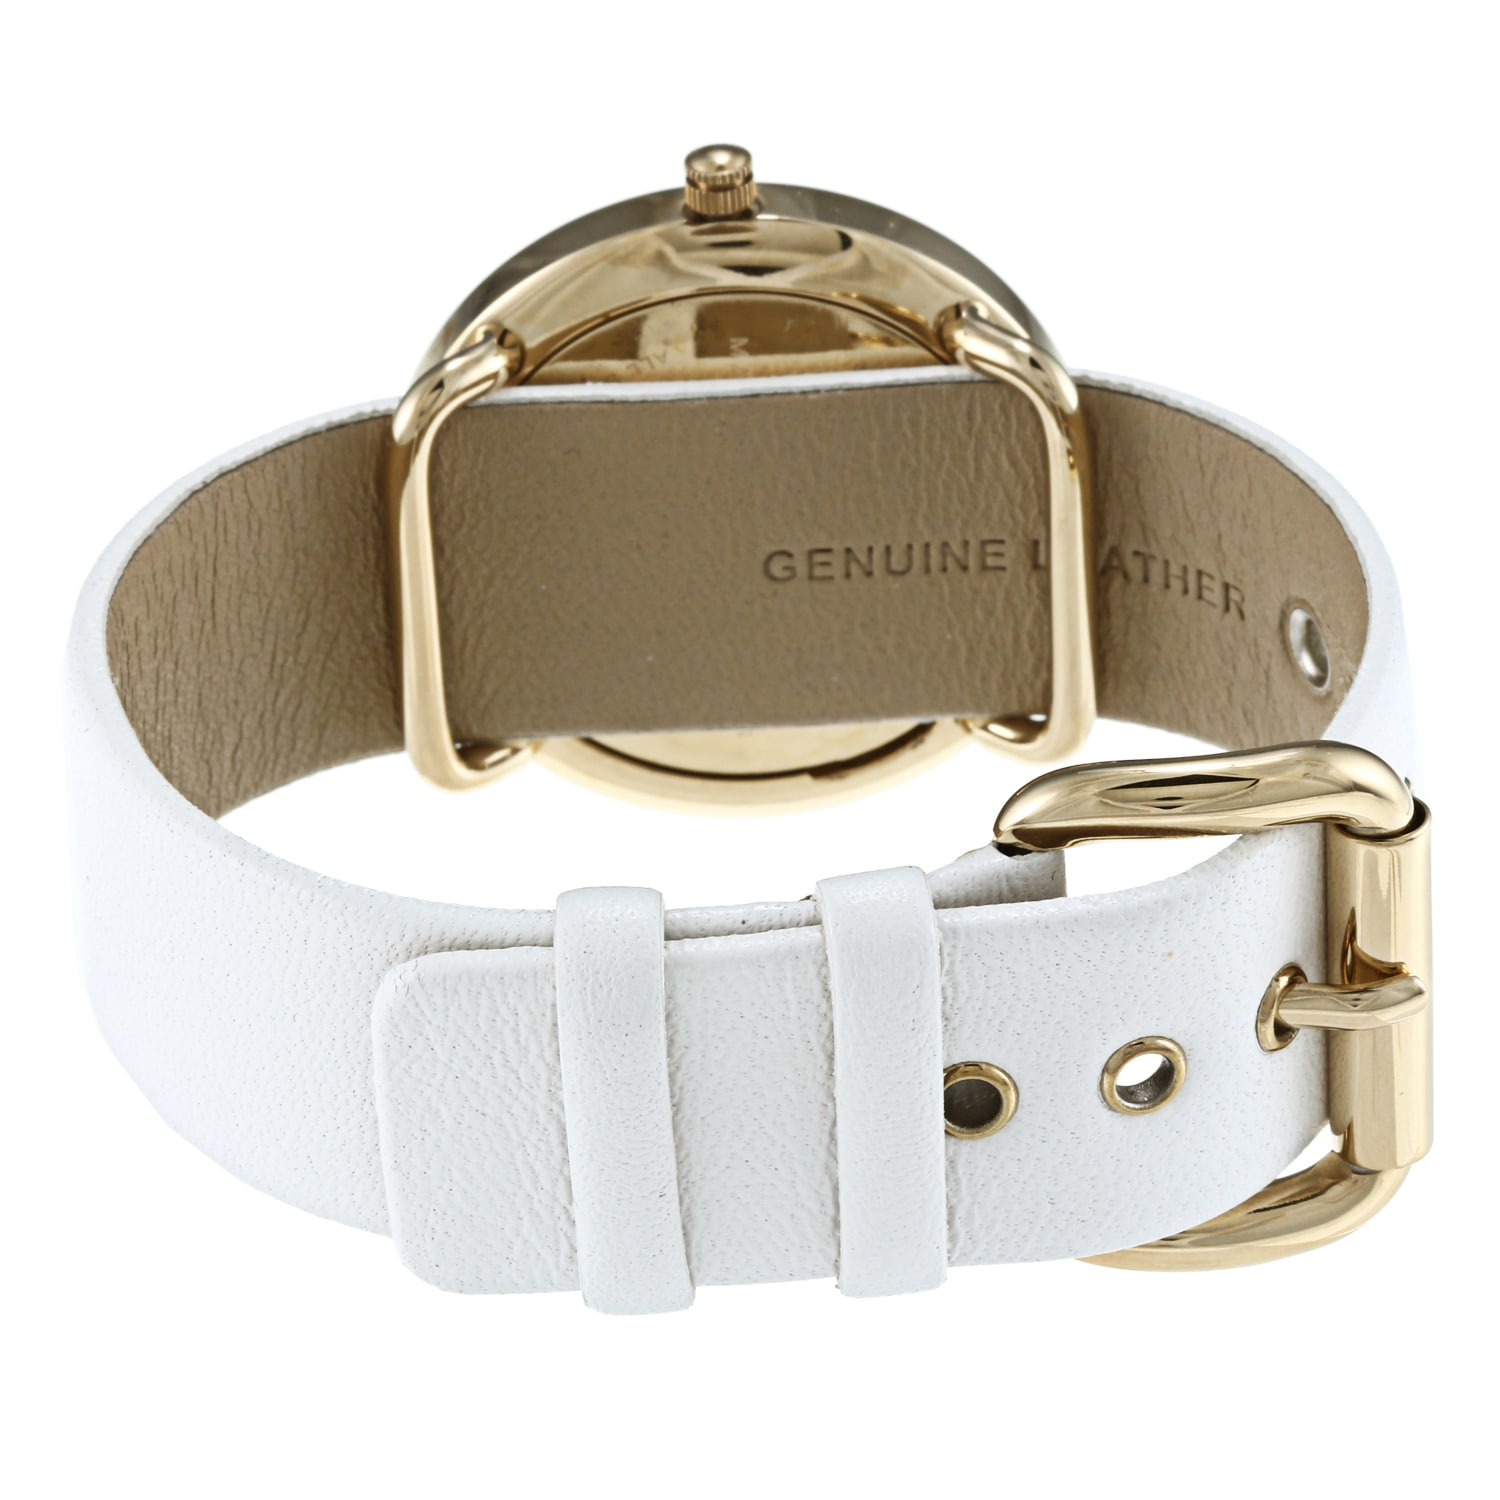 74e2b48e896c6 Shop Marc Jacobs Women's Amy White-and-goldtone Watch - Gold/White - Free  Shipping Today - Overstock - 6691562